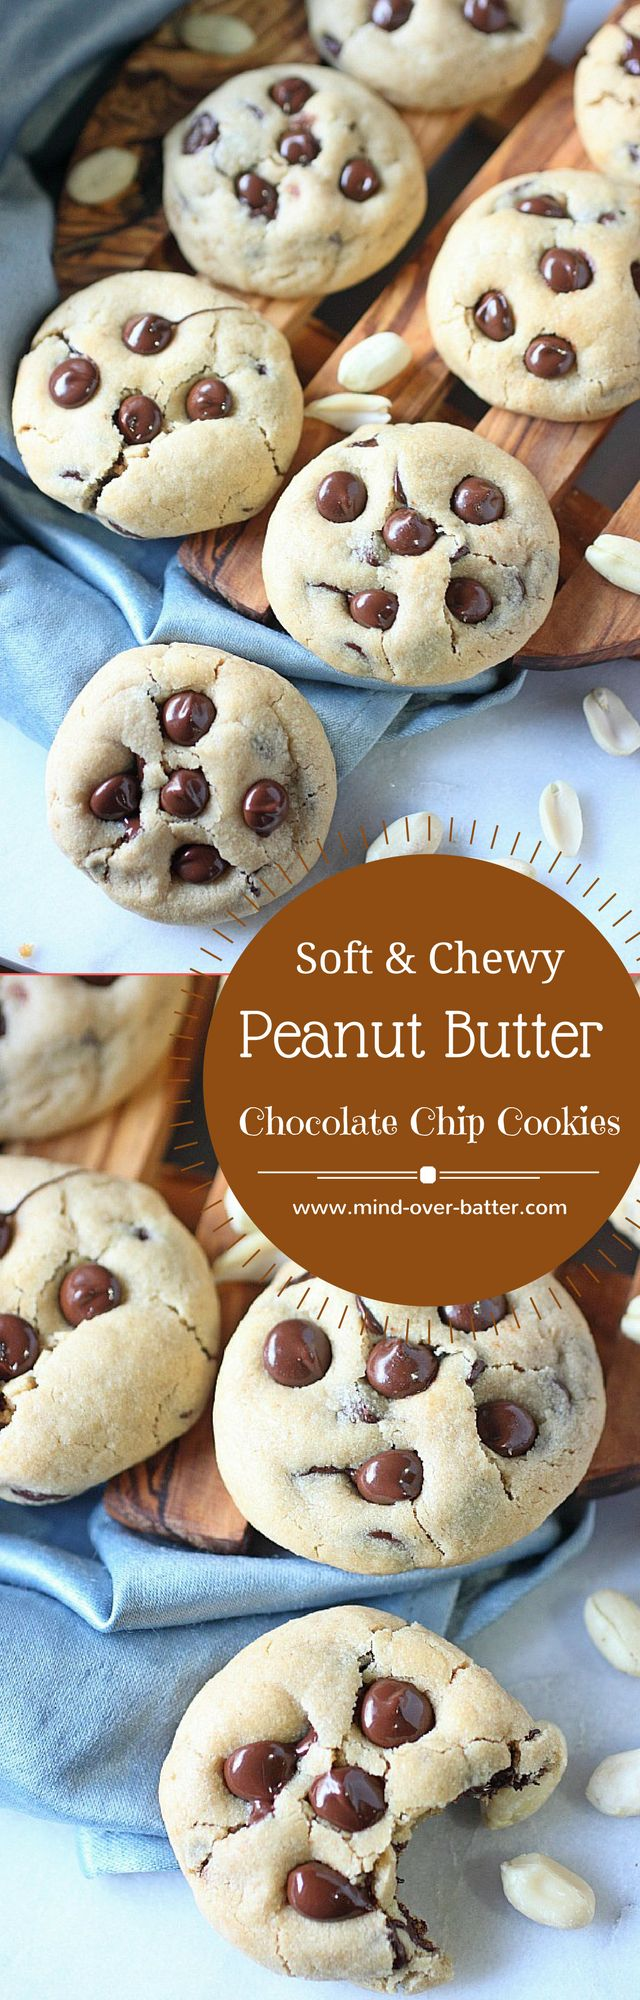 Sfot and Chewy Peanut Butter Chocolate Chip Cookie Recipe -- www.mind-over-batter.com